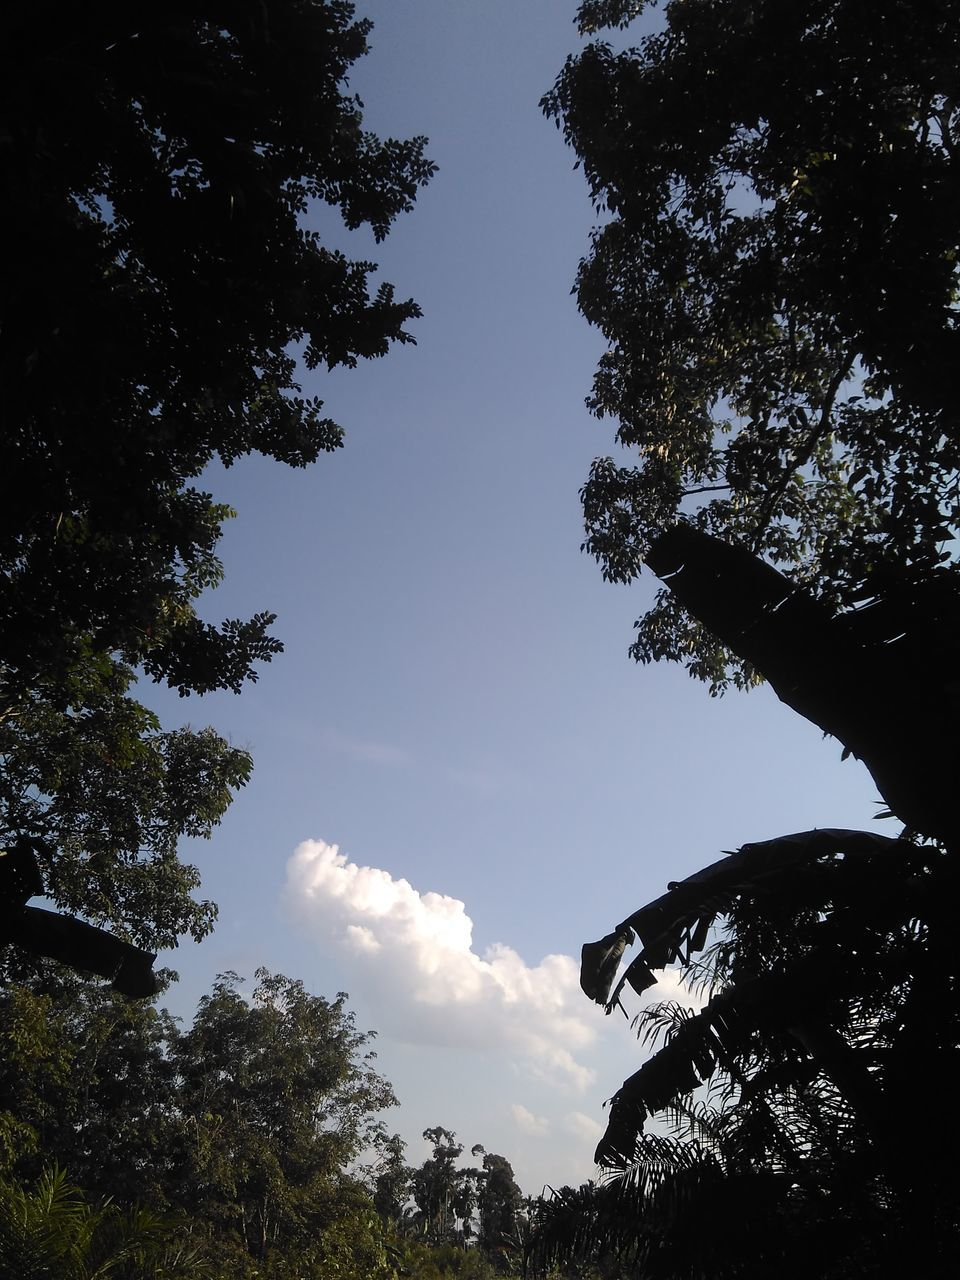 tree, low angle view, sky, growth, nature, beauty in nature, no people, branch, silhouette, cloud - sky, outdoors, day, tranquility, forest, scenics